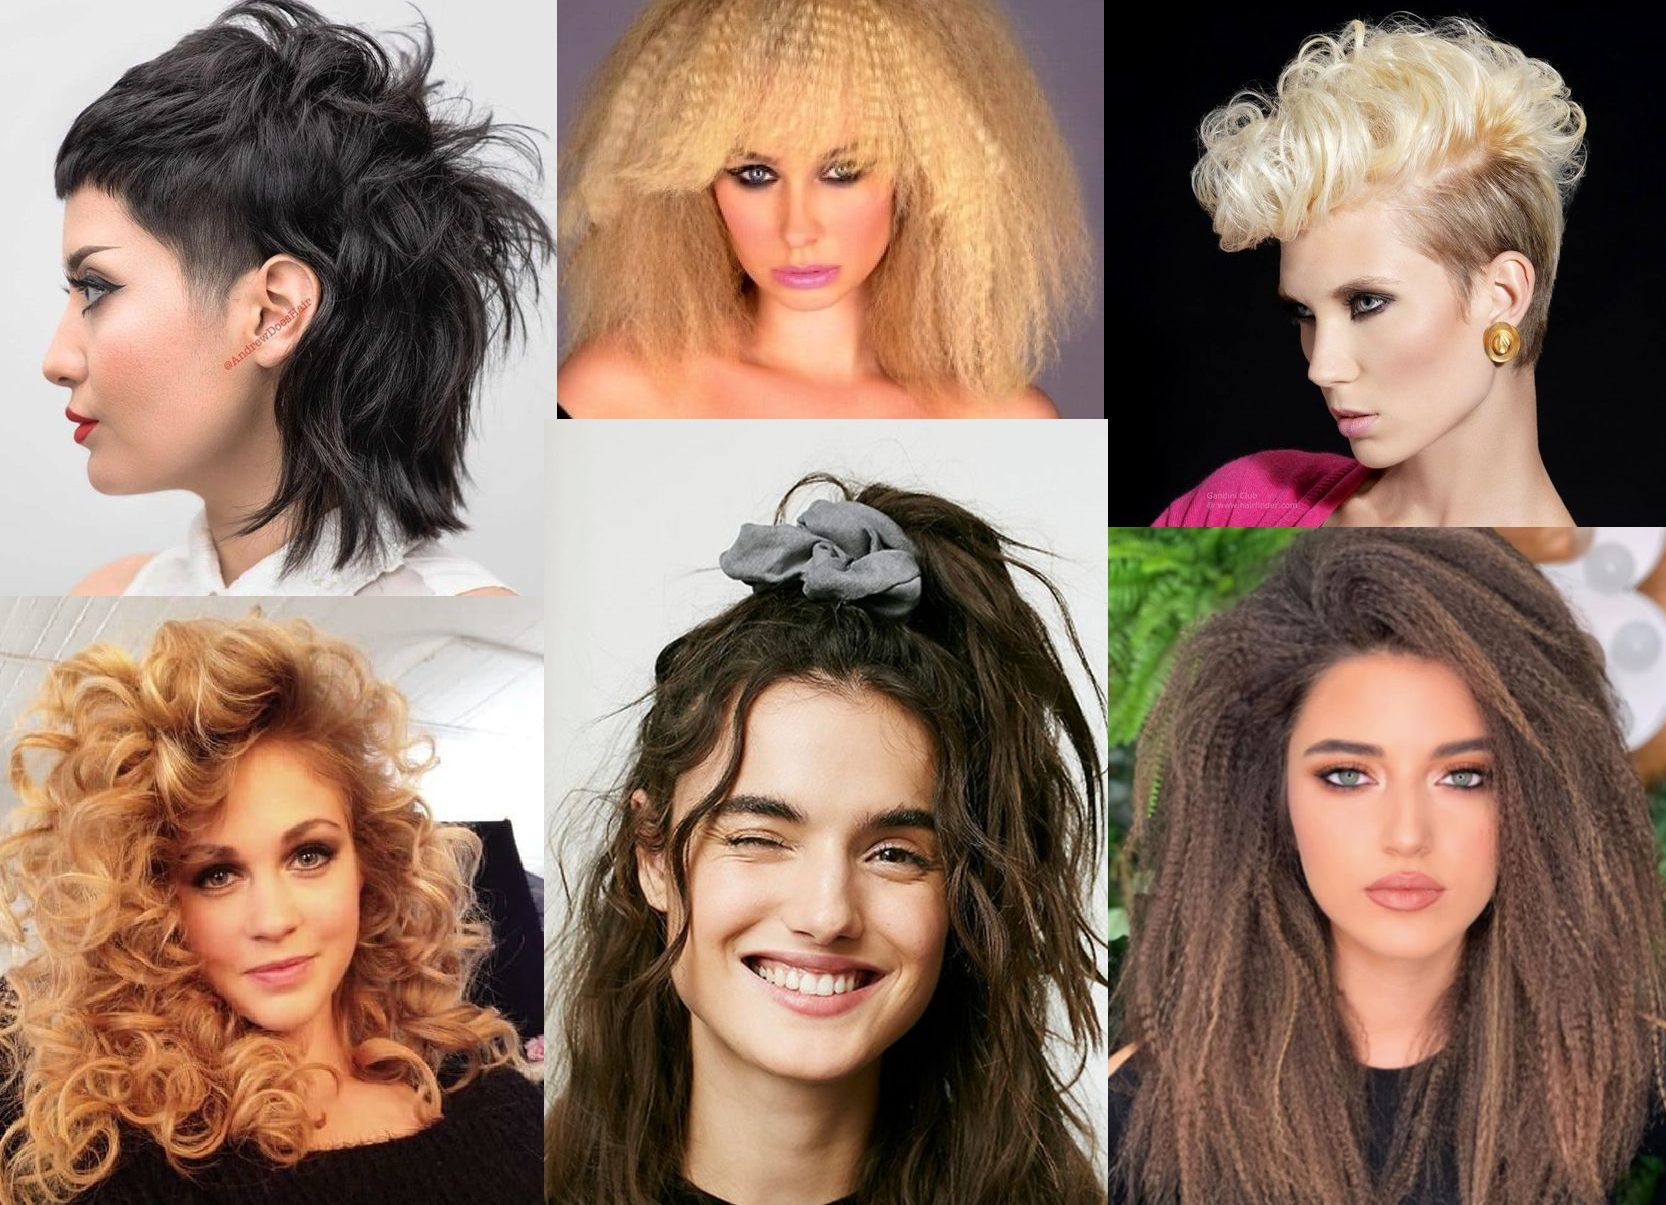 80s Hairstyles - 35 Hairstyles Inspired by the 1980s